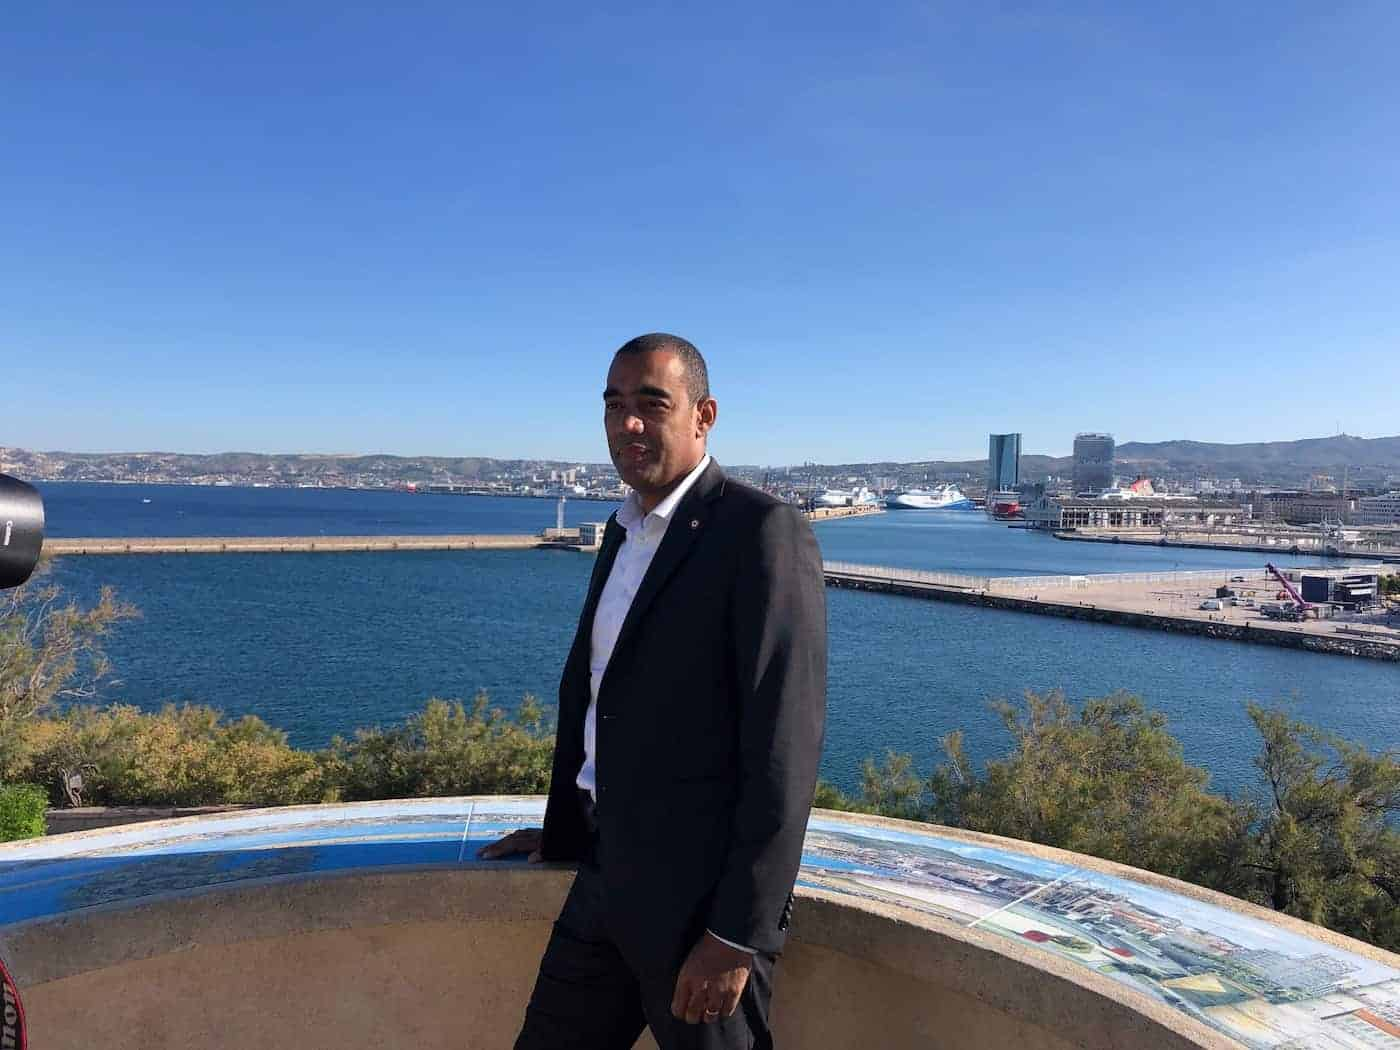 , Municipales 2020 : Saïd Ahamada (LREM) à la conquête de Marseille, Made in Marseille, Made in Marseille